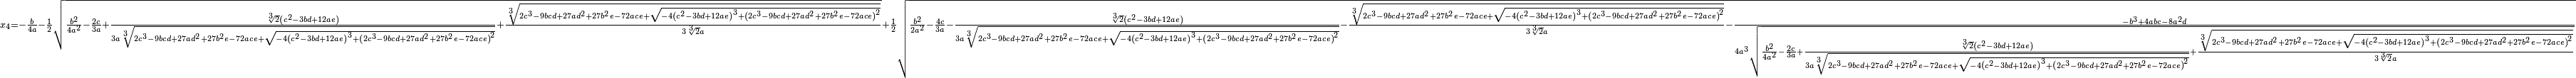 {}_{x_4=-\frac{b}{4a}-\frac{1}{2} \sqrt{\frac{b^2}{4a^2}-\frac{2c}{3a}+\frac{\sqrt[3]{2}\left(c^2-3bd+12ae\right)}{3a\sqrt[3]{2c^3-9bcd+27ad^2+27b^2e-72ace+\sqrt{-4\left(c^2-3bd+12ae\right)^3+\left(2c^3-9bcd+27ad^2+27b^2e-72ace\right)^2}}}+\frac{\sqrt[3]{2c^3-9bcd+27ad^2+27b^2e-72ace+\sqrt{-4\left(c^2-3bd+12ae\right)^3+\left(2c^3-9bcd+27ad^2+27b^2e-72ace\right)^2}}}{3\sqrt[3]{2}a}}+\frac{1}{2} \sqrt{\frac{b^2}{2a^2}-\frac{4c}{3a}-\frac{\sqrt[3]{2}\left(c^2-3bd+12ae\right)}{3a\sqrt[3]{2c^3-9bcd+27ad^2+27b^2e-72ace+\sqrt{-4\left(c^2-3bd+12ae\right)^3+\left(2c^3-9bcd+27ad^2+27b^2e-72ace\right)^2}}}-\frac{\sqrt[3]{2c^3-9bcd+27ad^2+27b^2e-72ace+\sqrt{-4\left(c^2-3bd+12ae\right)^3+\left(2c^3-9bcd+27ad^2+27b^2e-72ace\right)^2}}}{3\sqrt[3]{2}a}-\frac{-b^3+4abc-8a^2d}{4a^3\sqrt{\frac{b^2}{4a^2}-\frac{2c}{3a}+\frac{\sqrt[3]{2}\left(c^2-3bd+12ae\right)}{3a\sqrt[3]{2c^3-9bcd+27ad^2+27b^2e-72ace+\sqrt{-4\left(c^2-3bd+12ae\right)^3+\left(2c^3-9bcd+27ad^2+27b^2e-72ace\right)^2}}}+\frac{\sqrt[3]{2c^3-9bcd+27ad^2+27b^2e-72ace+\sqrt{-4\left(c^2-3bd+12ae\right)^3+\left(2c^3-9bcd+27ad^2+27b^2e-72ace\right)^2}}} {3\sqrt[3]{2}a}}}}}